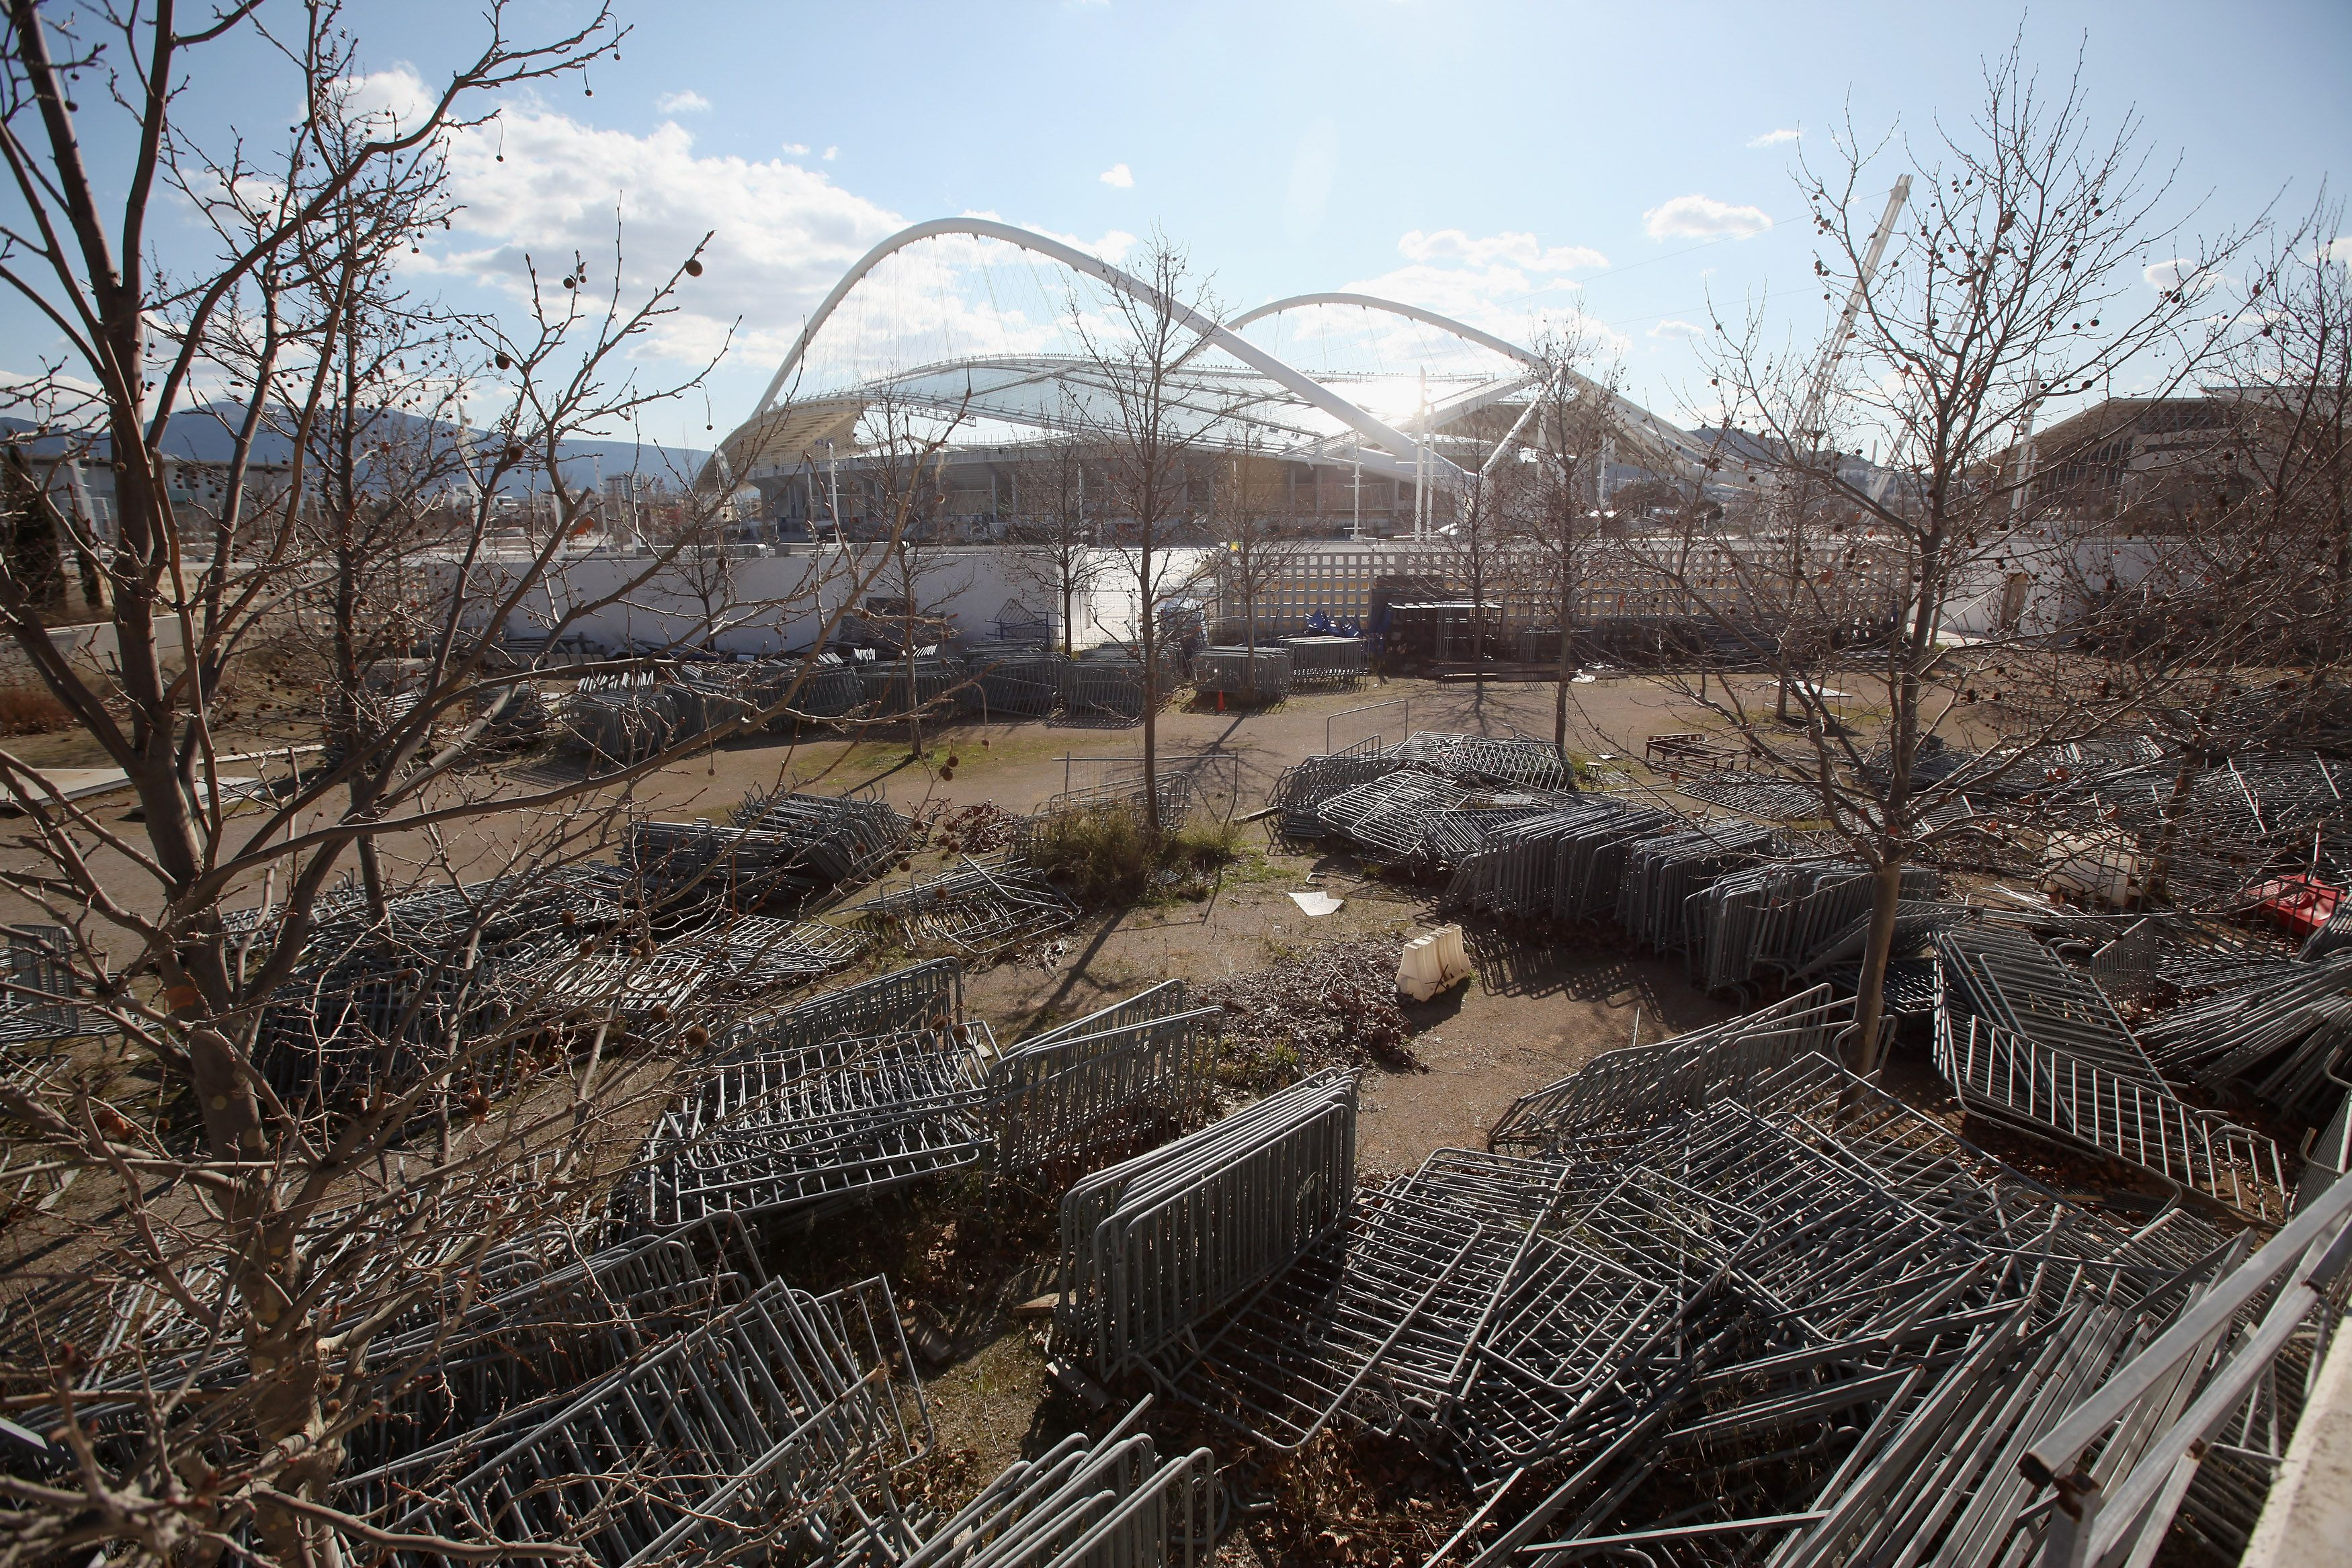 Abandoned Olympic facilities today